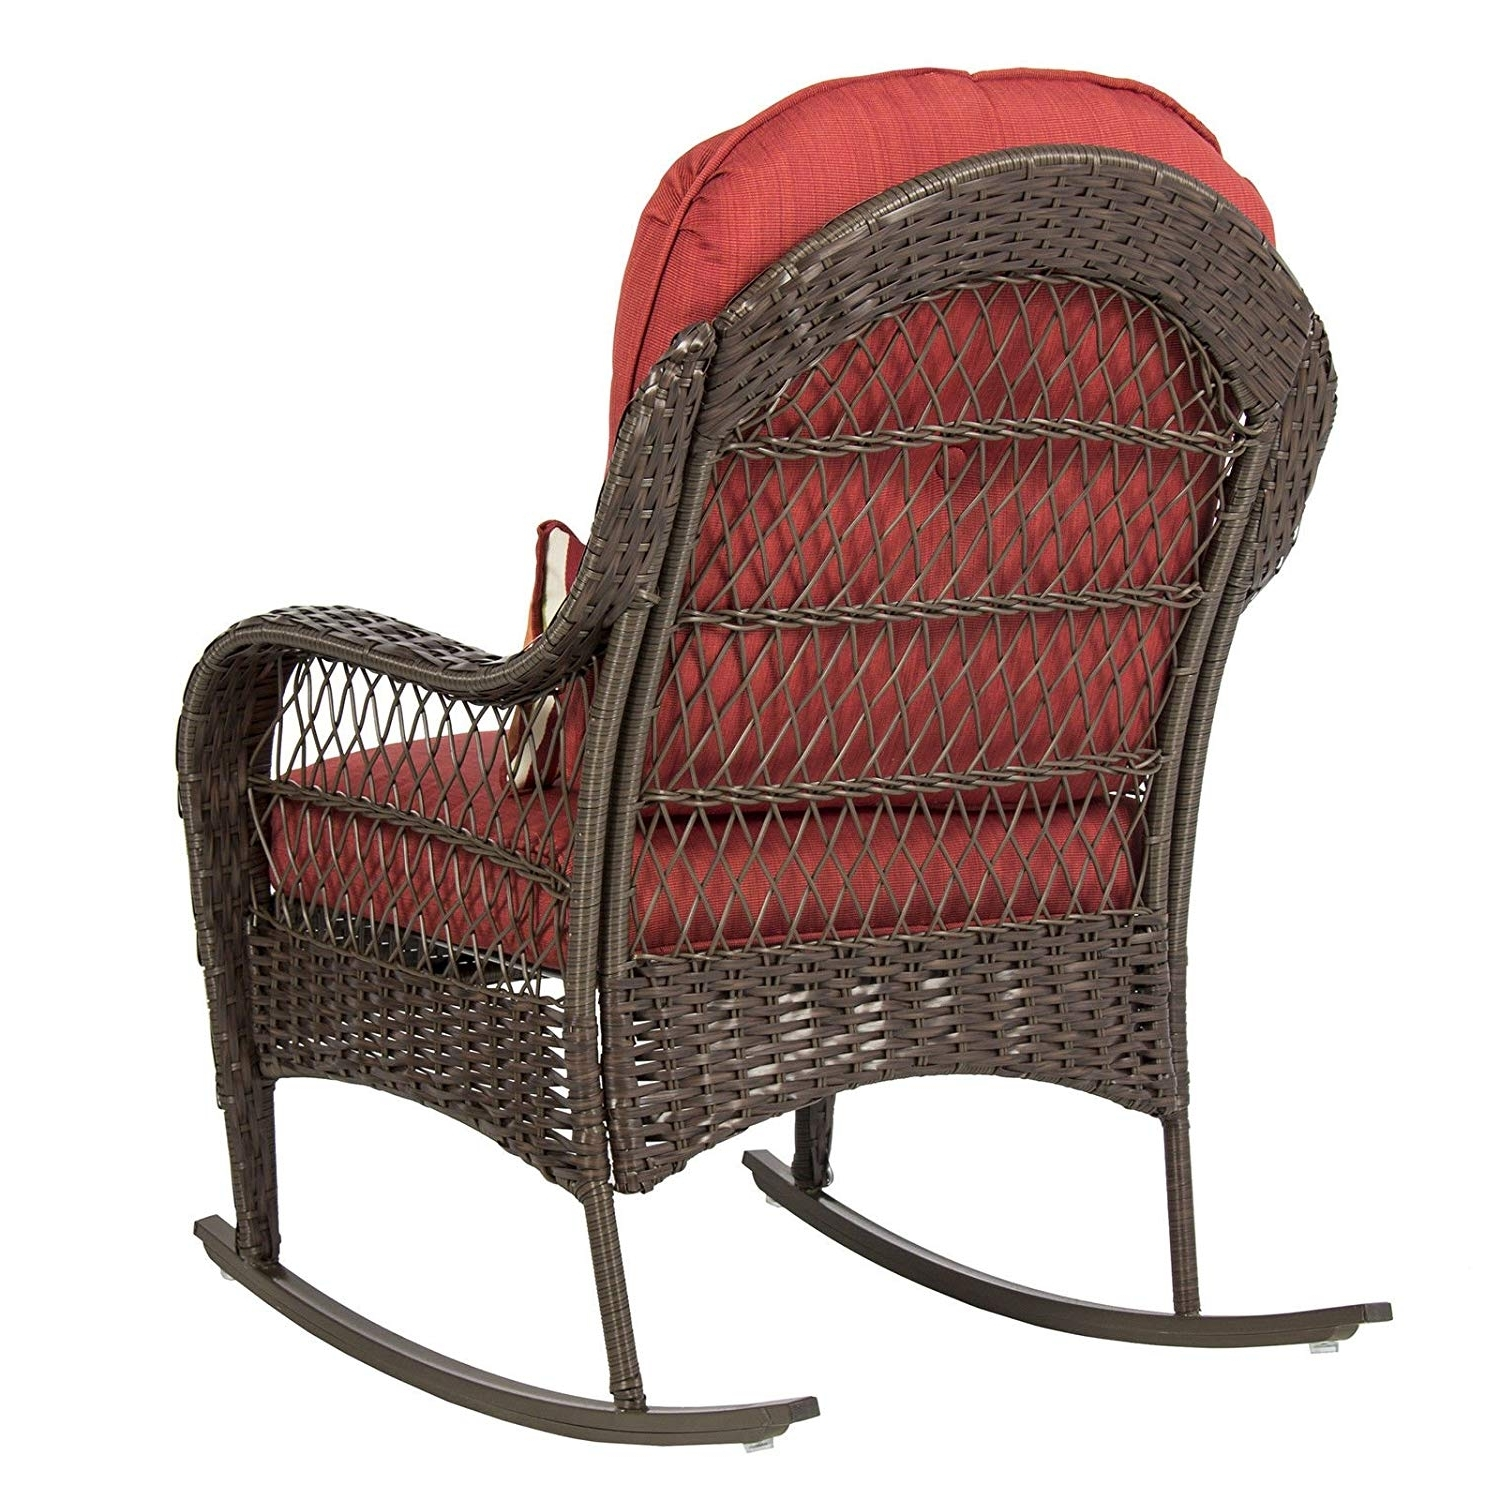 Amazon : Best Choice Products Wicker Rocking Chair Patio Porch Within Latest Used Patio Rocking Chairs (View 10 of 15)